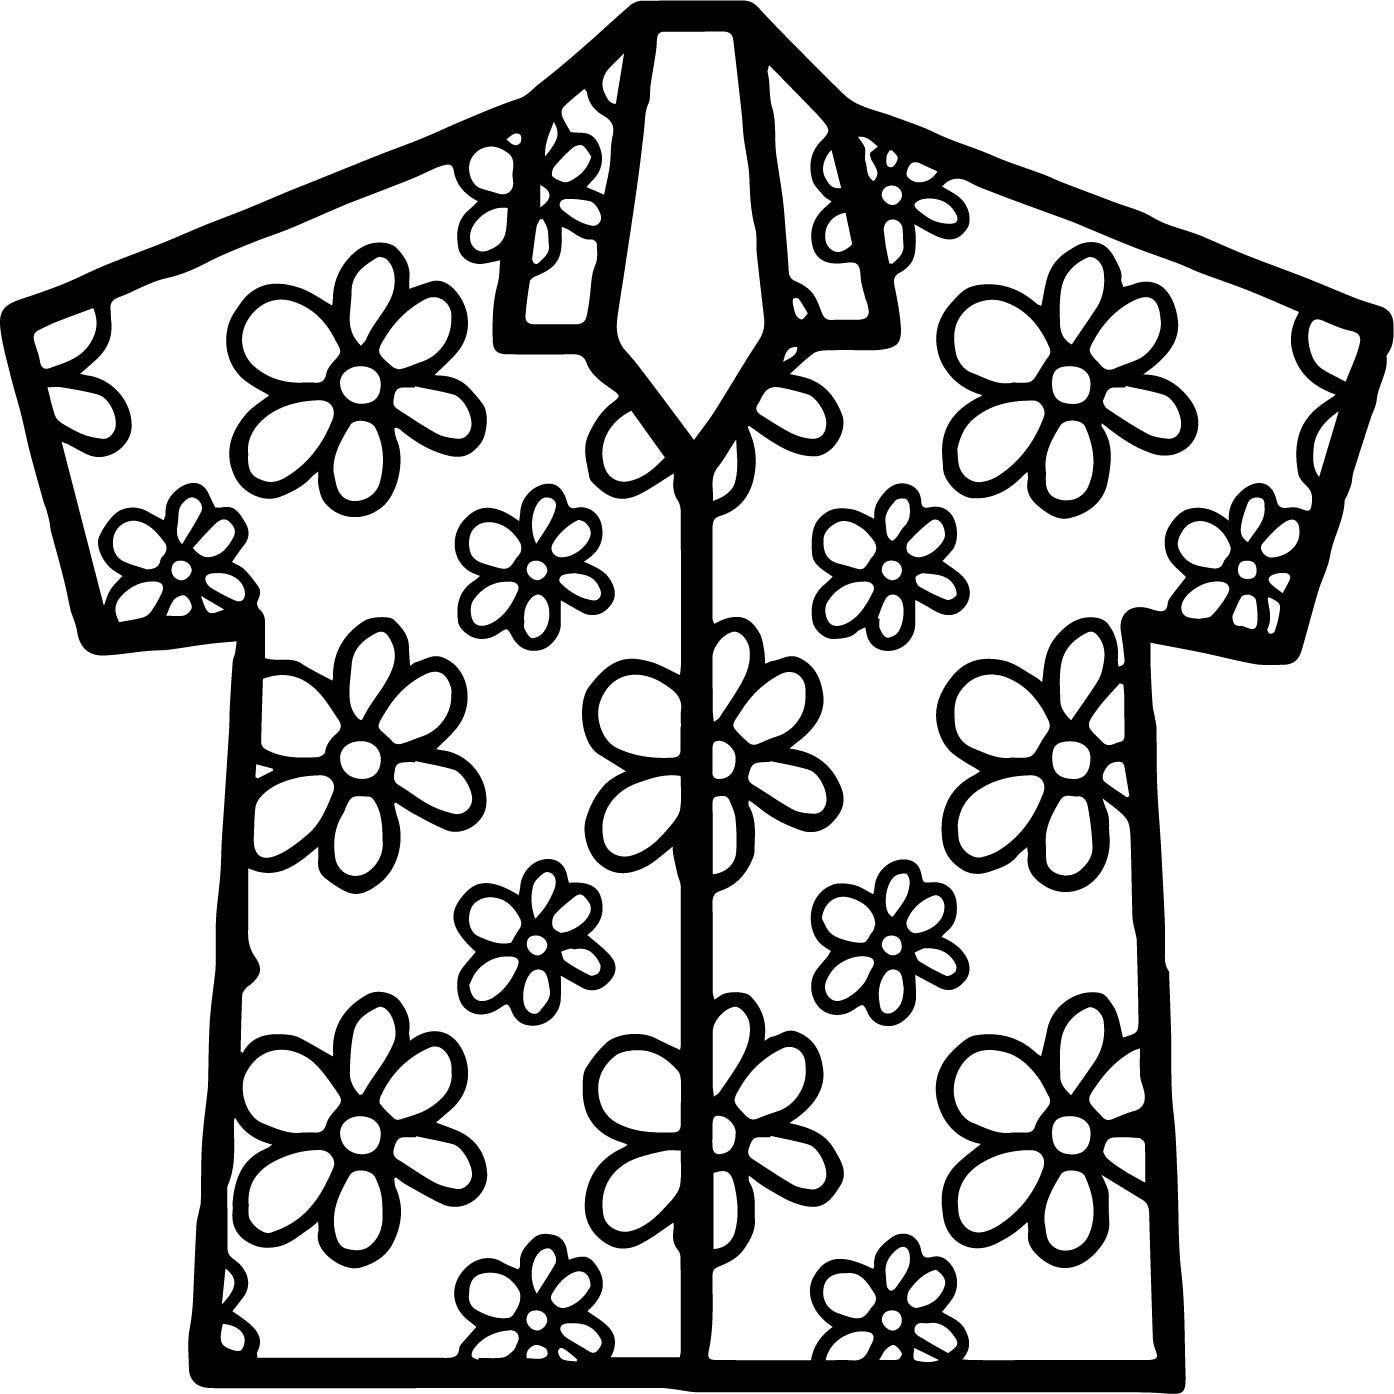 Cool Hawaiian Shirt Coloring Page Coloring Pages Printable Flash Cards Free Printable Coloring Pages